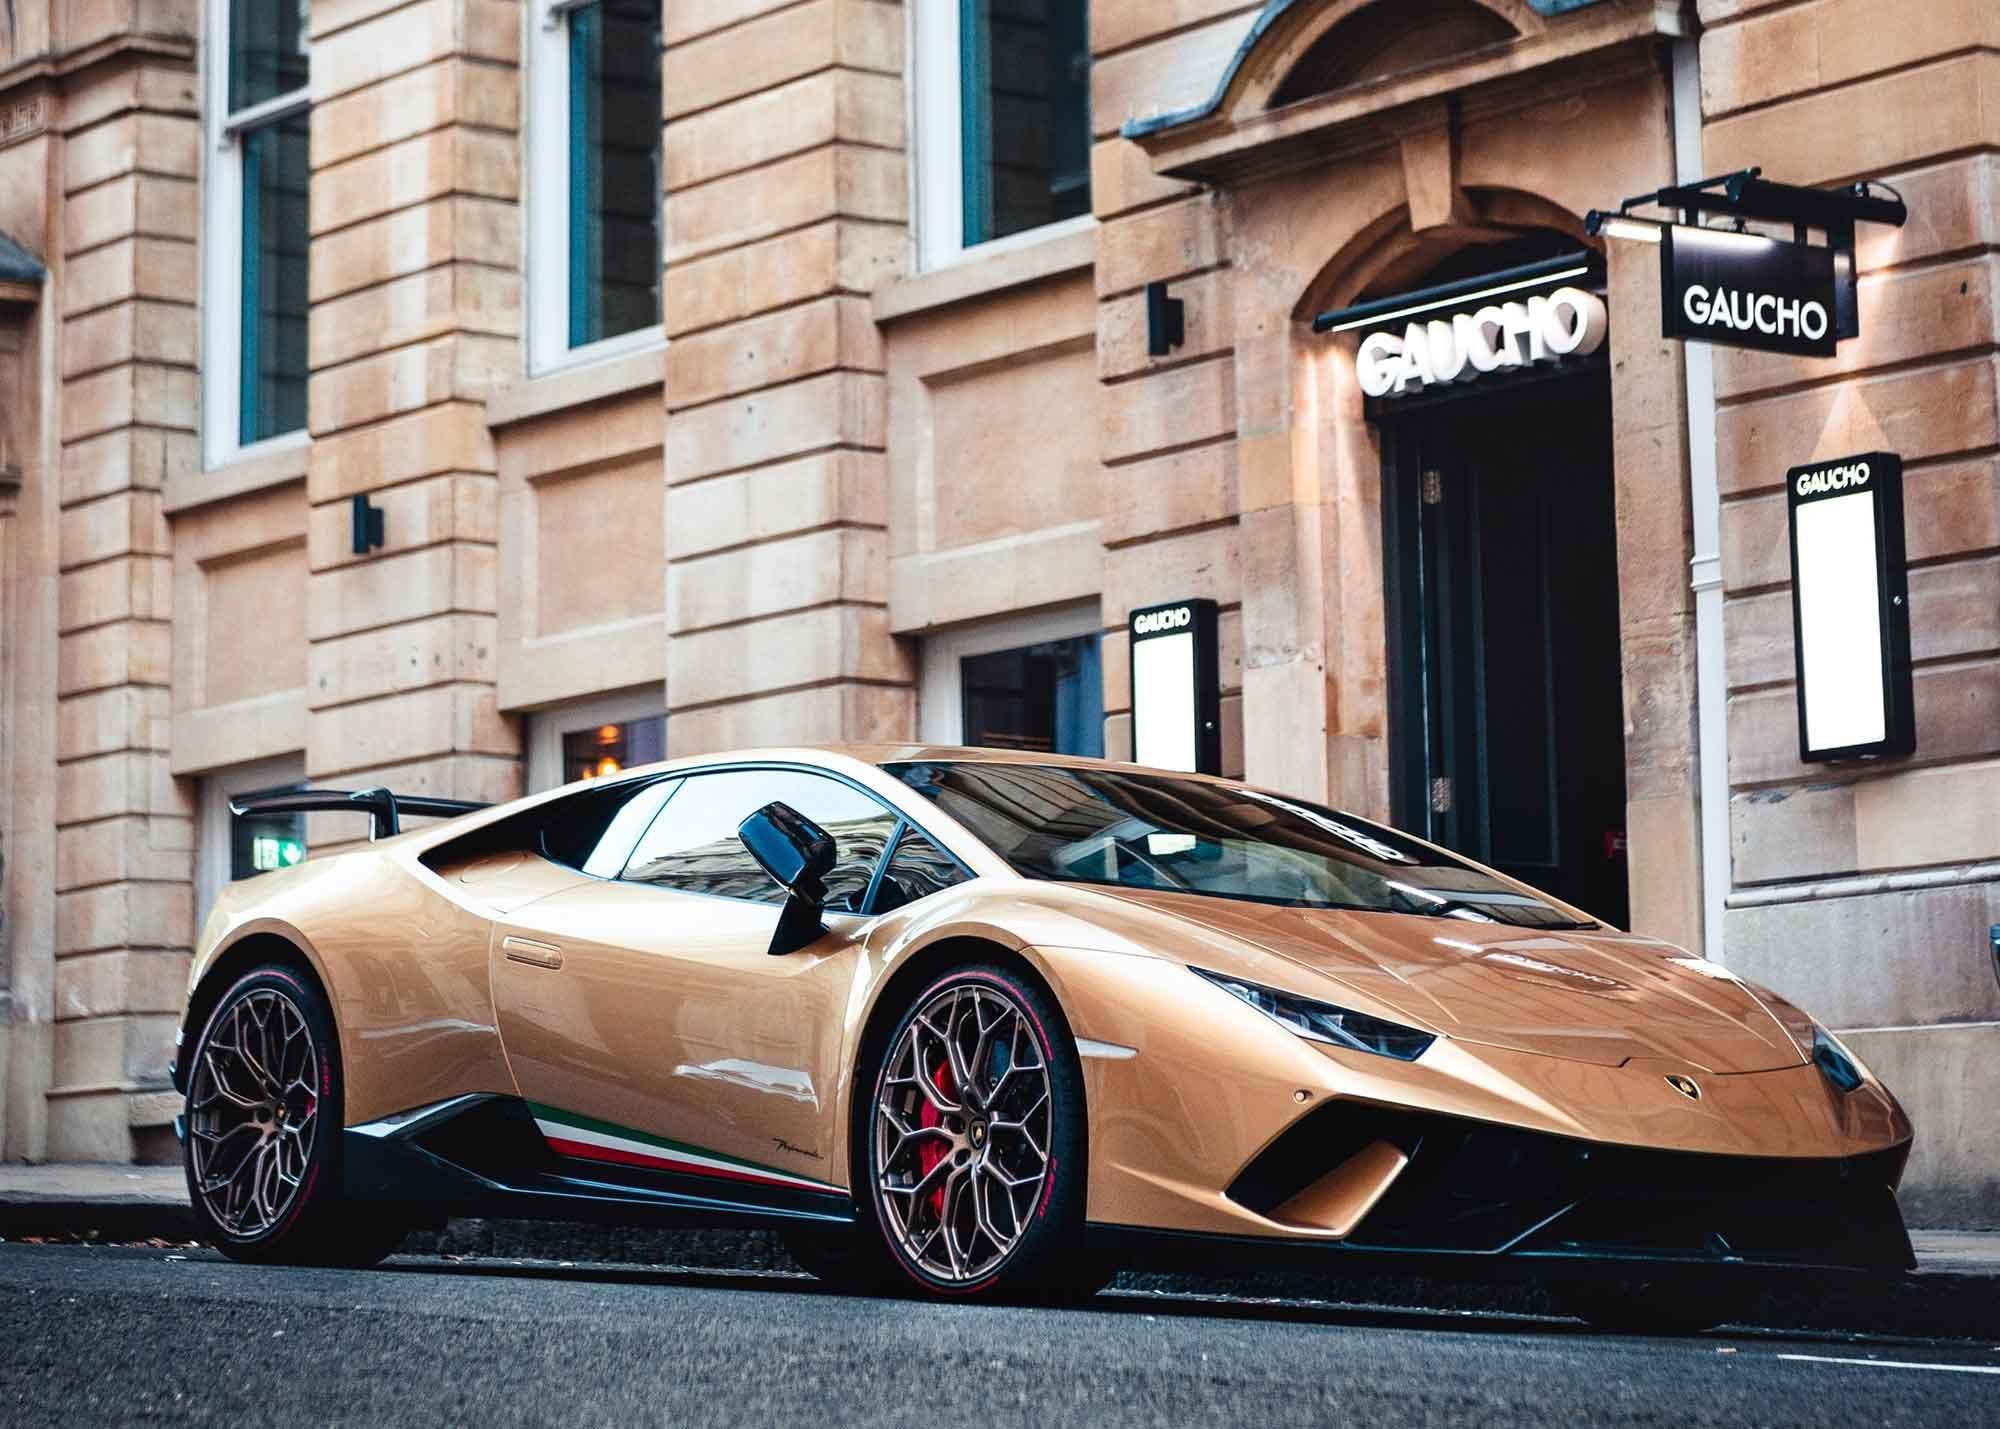 Luxury car parked in front of a luxury goods store